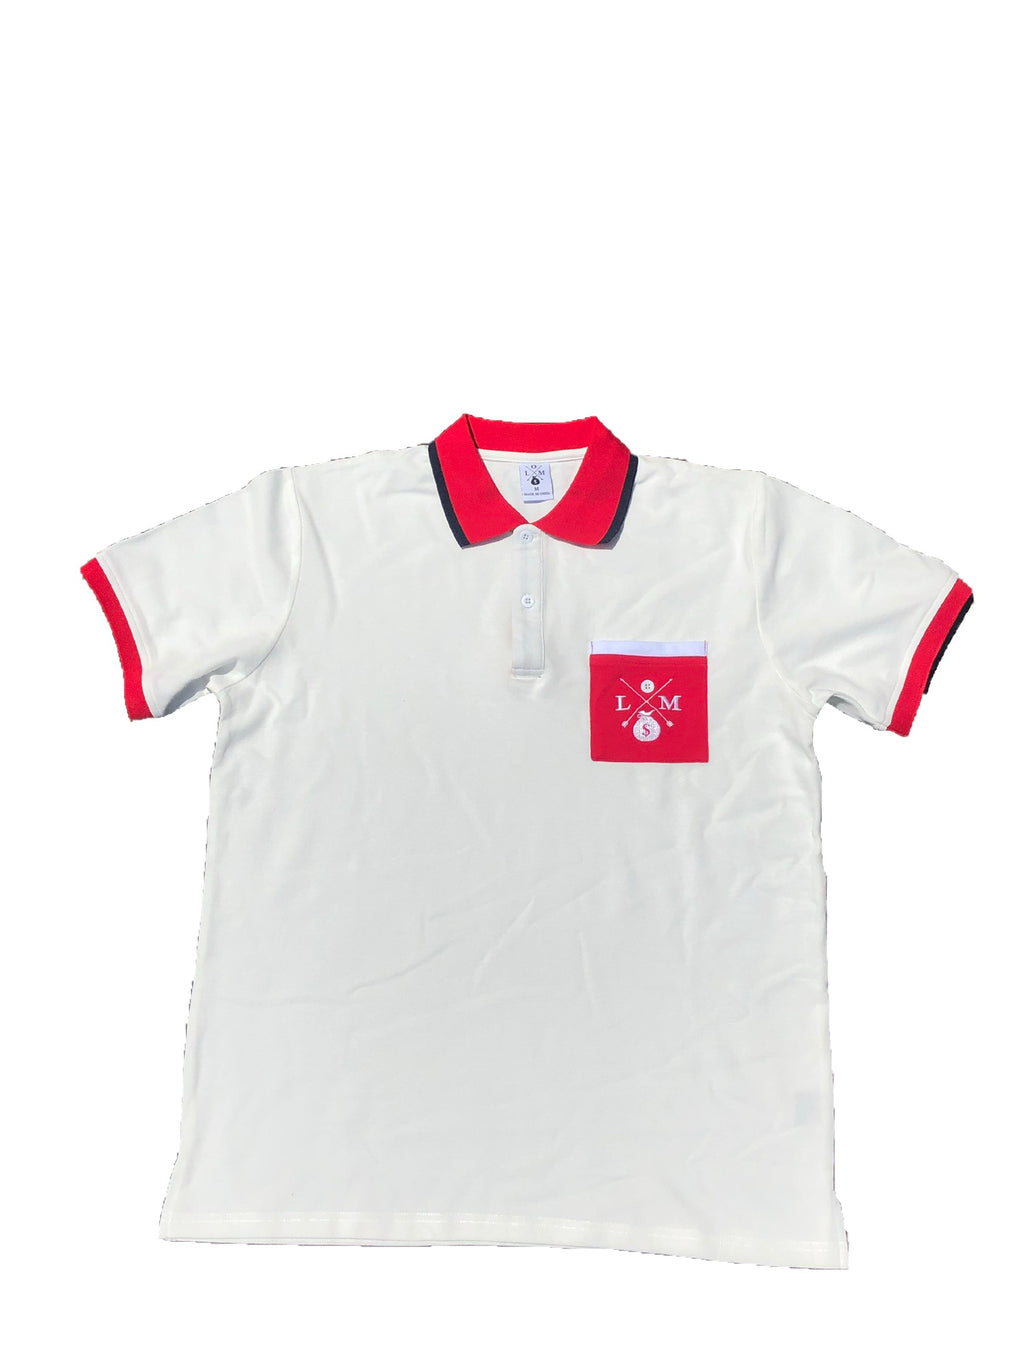 WHITE NEW LOGO COLLARED SHIRTS